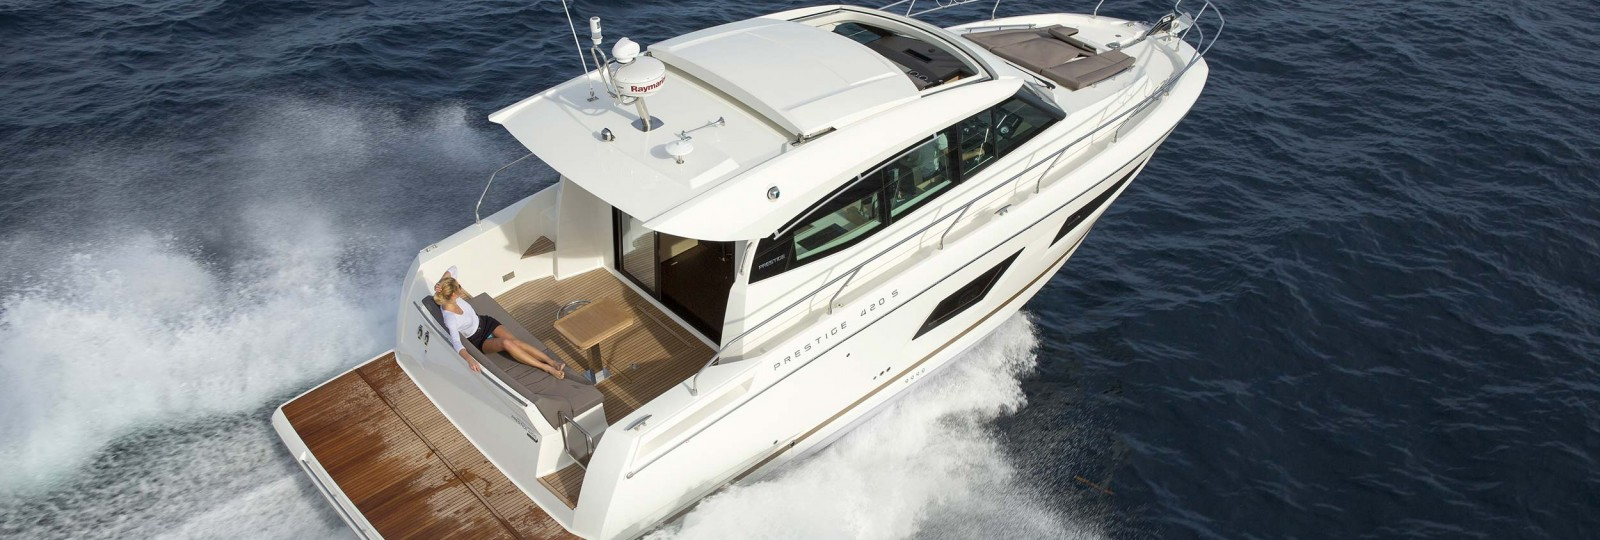 Prestige Coupe 420 Yacht running